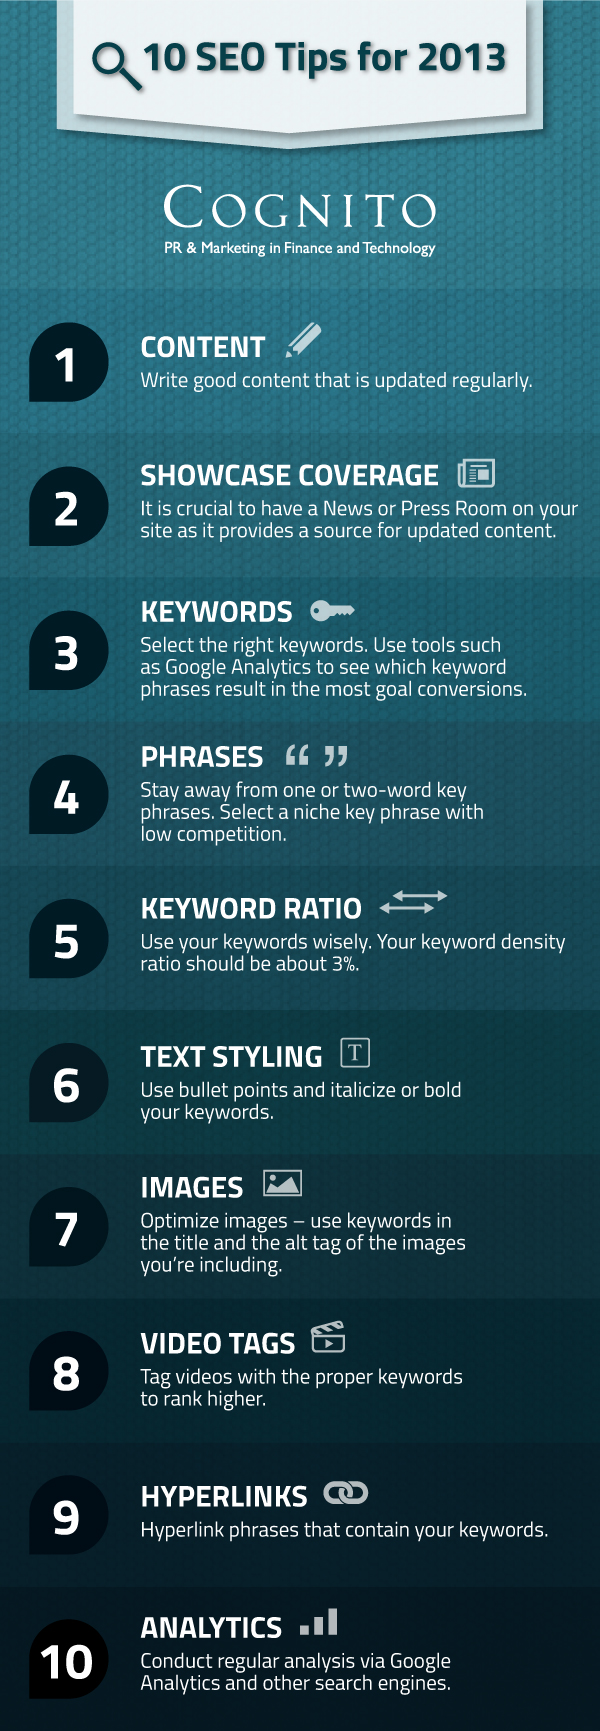 SEO-Tips-Infographic-V211.jpg